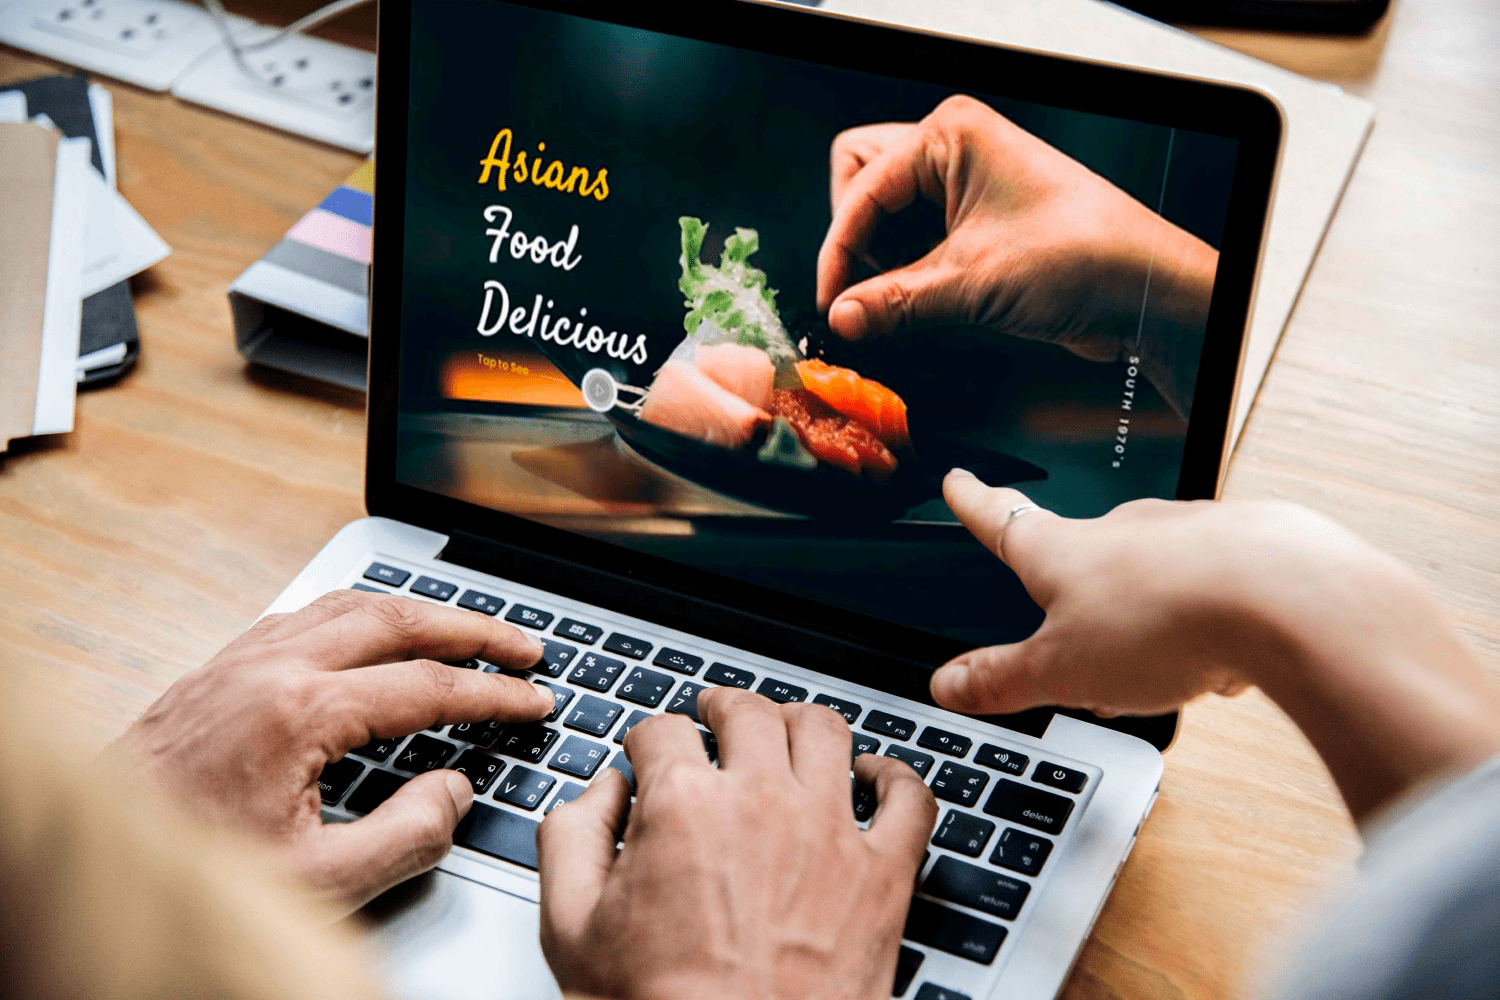 Asians Food - Food PowerPoint by MasterBundles notebook preview mockup image.